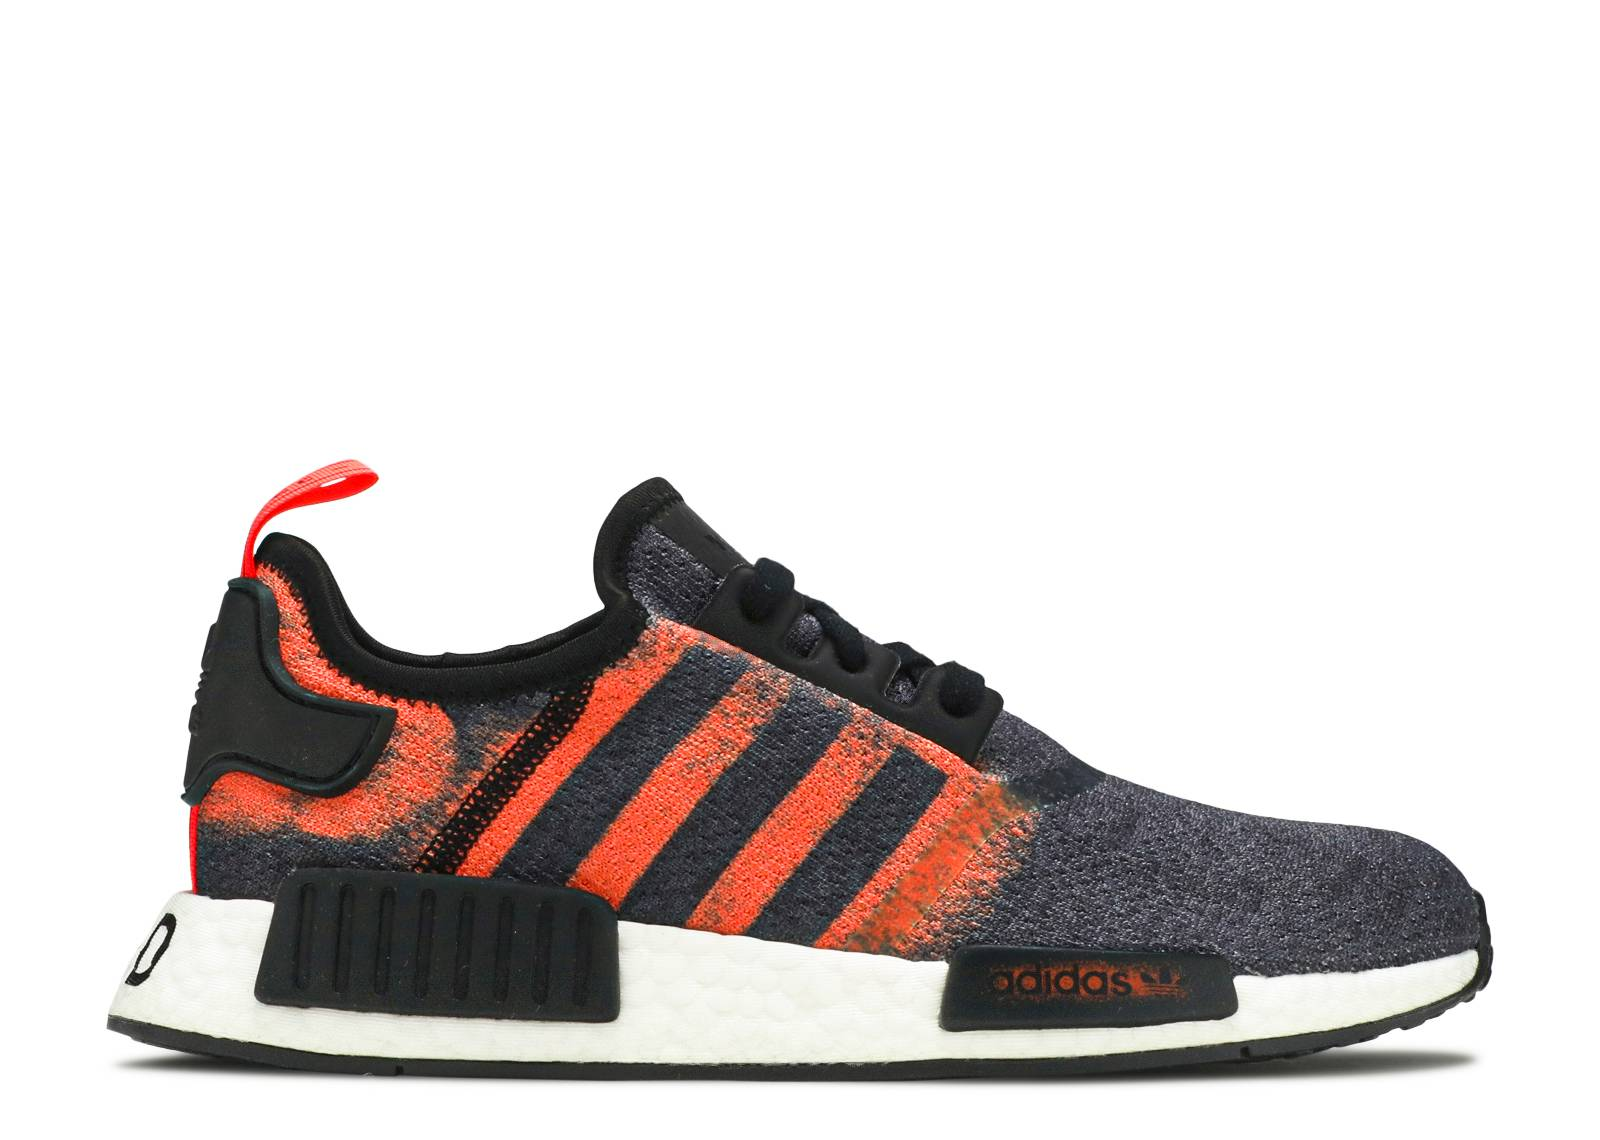 c7404c5ab Adidas NMD - adidas Originals Men s   Women s Shoes